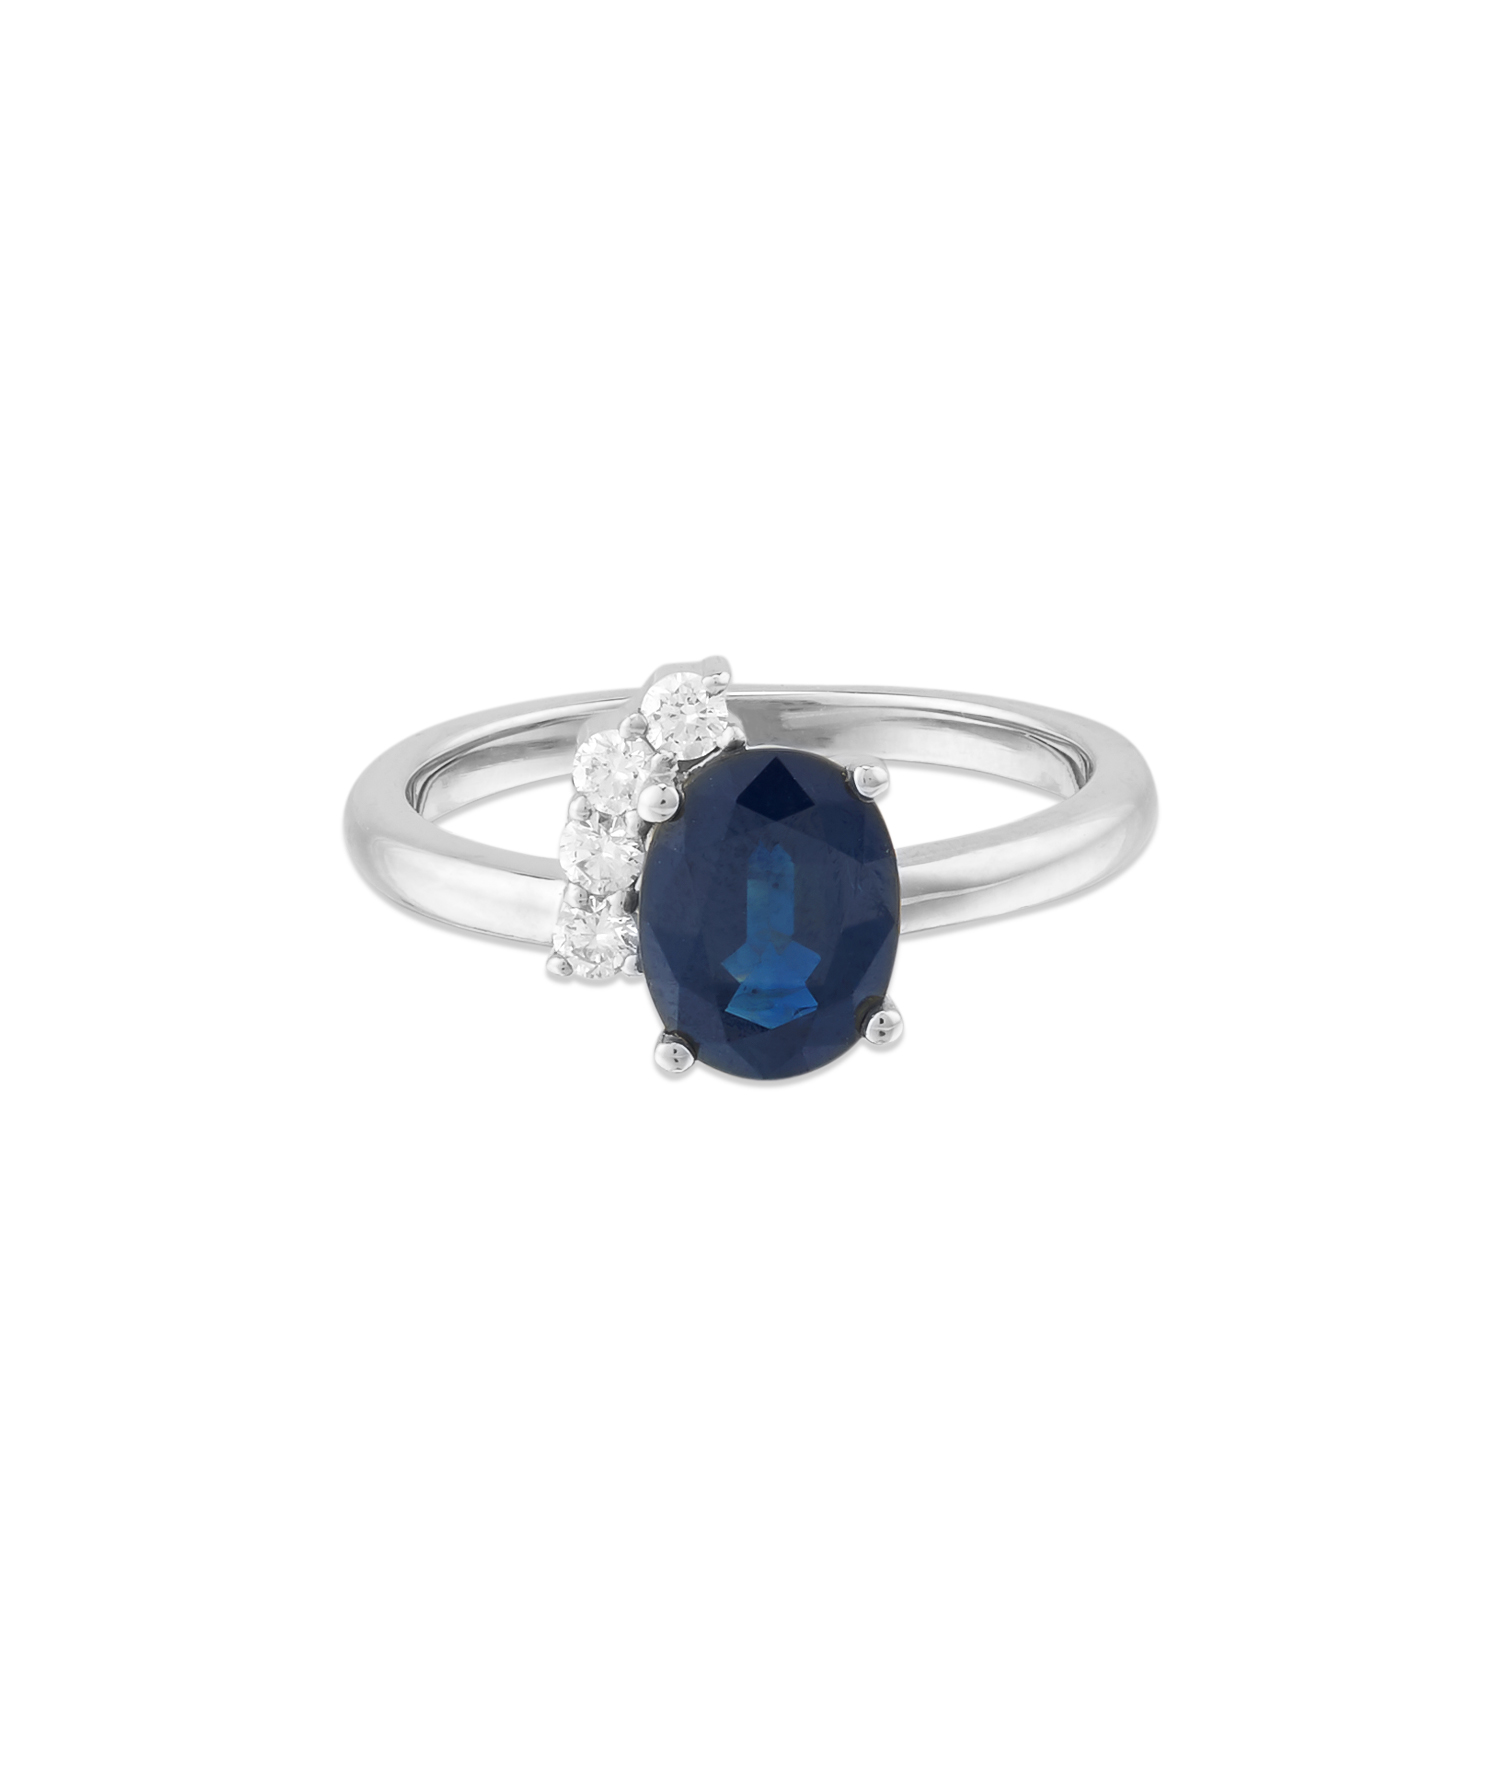 mejuri-sapphire-white-gold-engagnement-ring